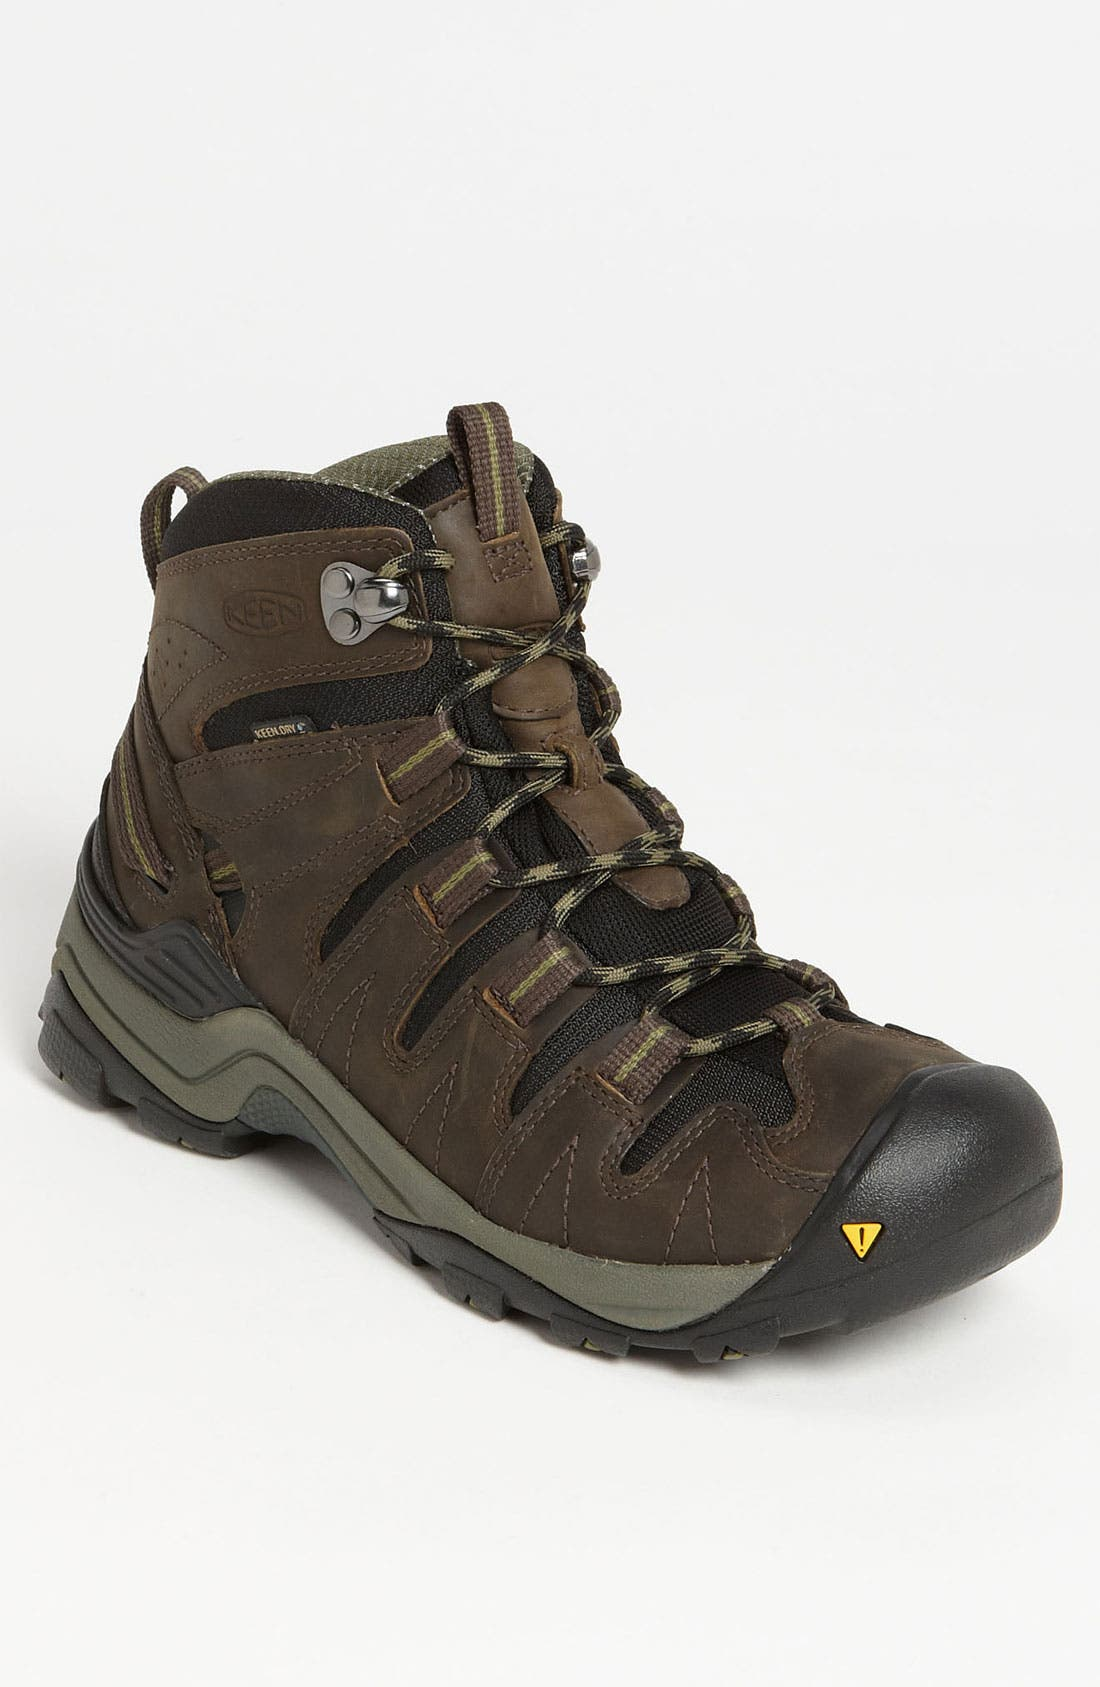 Alternate Image 1 Selected - Keen 'Gypsum' Hiking Boot (Men) (Online Only)